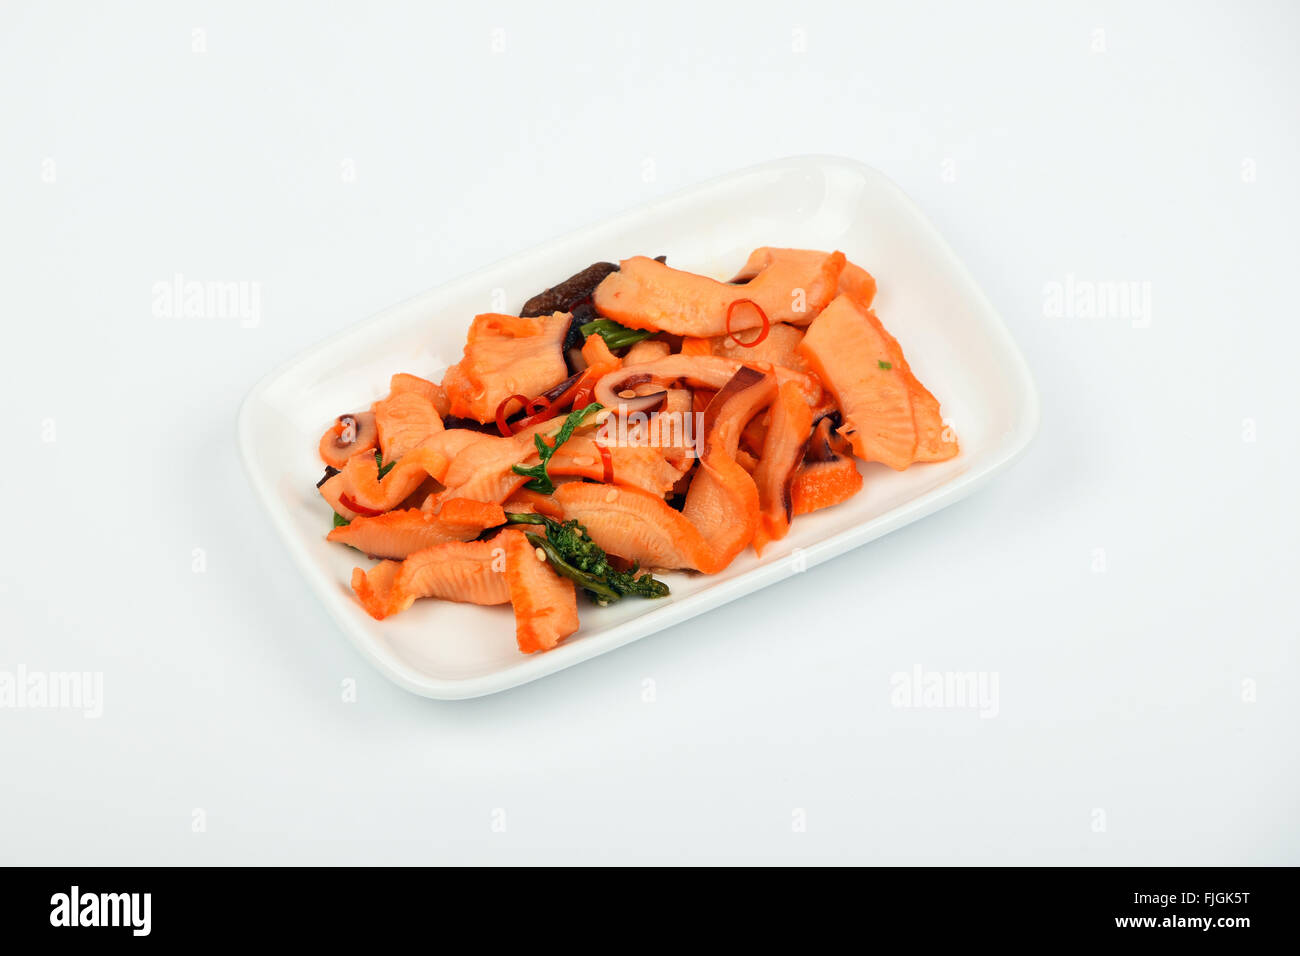 Seafood calamari squid, seaweeds and chili marinated salad snack with souse on white dish plate over white background, - Stock Image